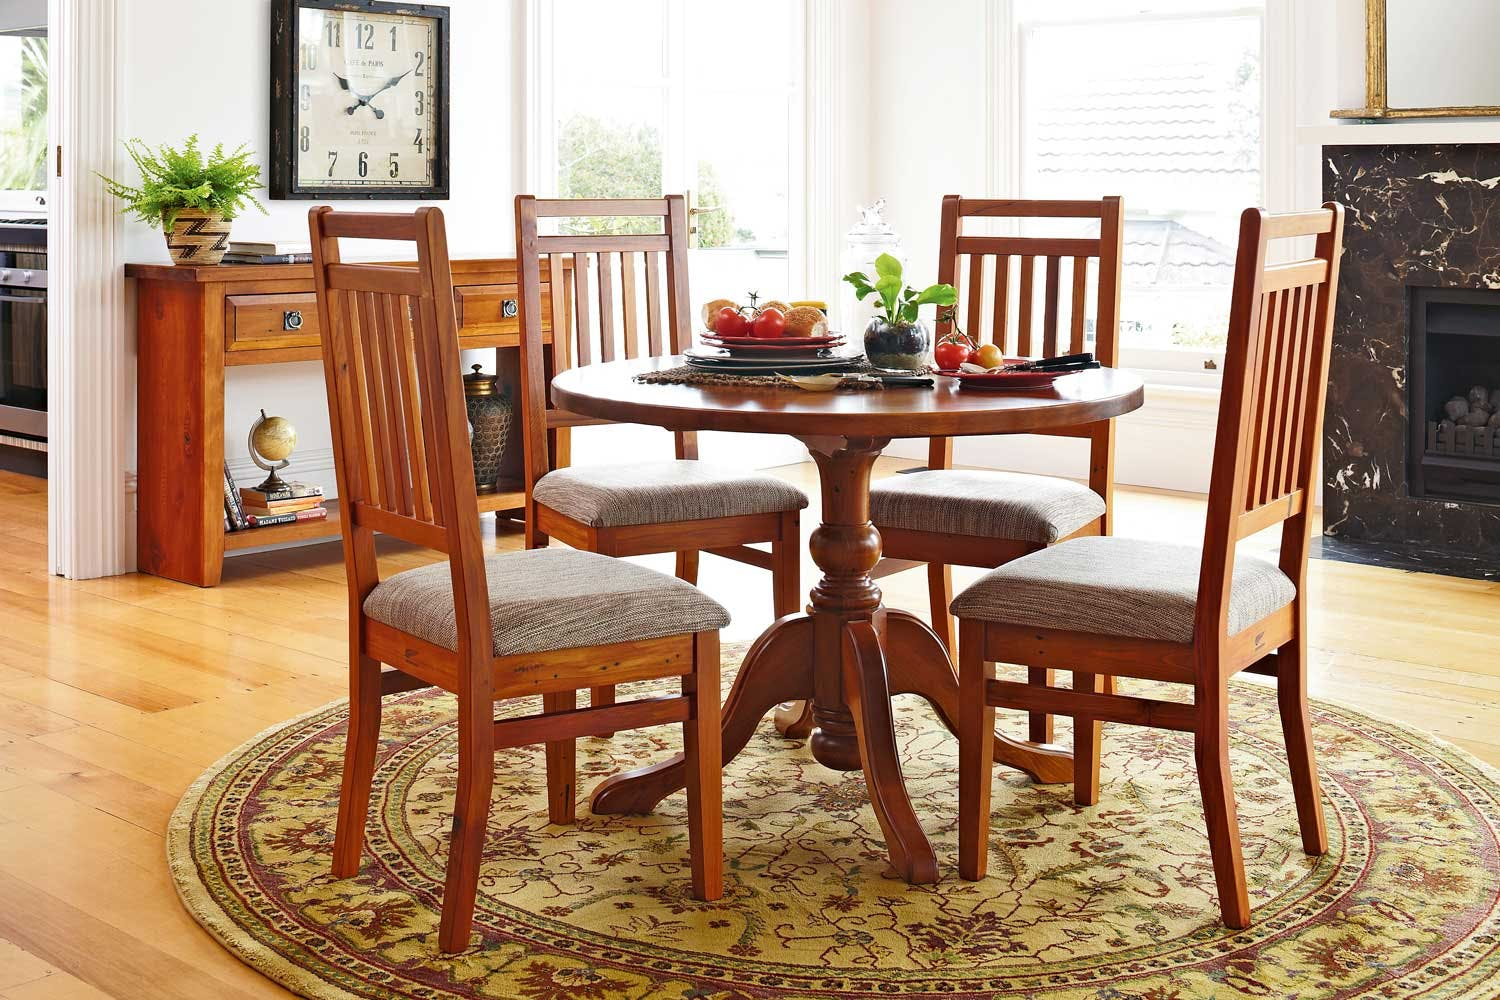 Clutha 5 Piece Round Dining Suite By Woodpecker Furniture Harvey Norman New